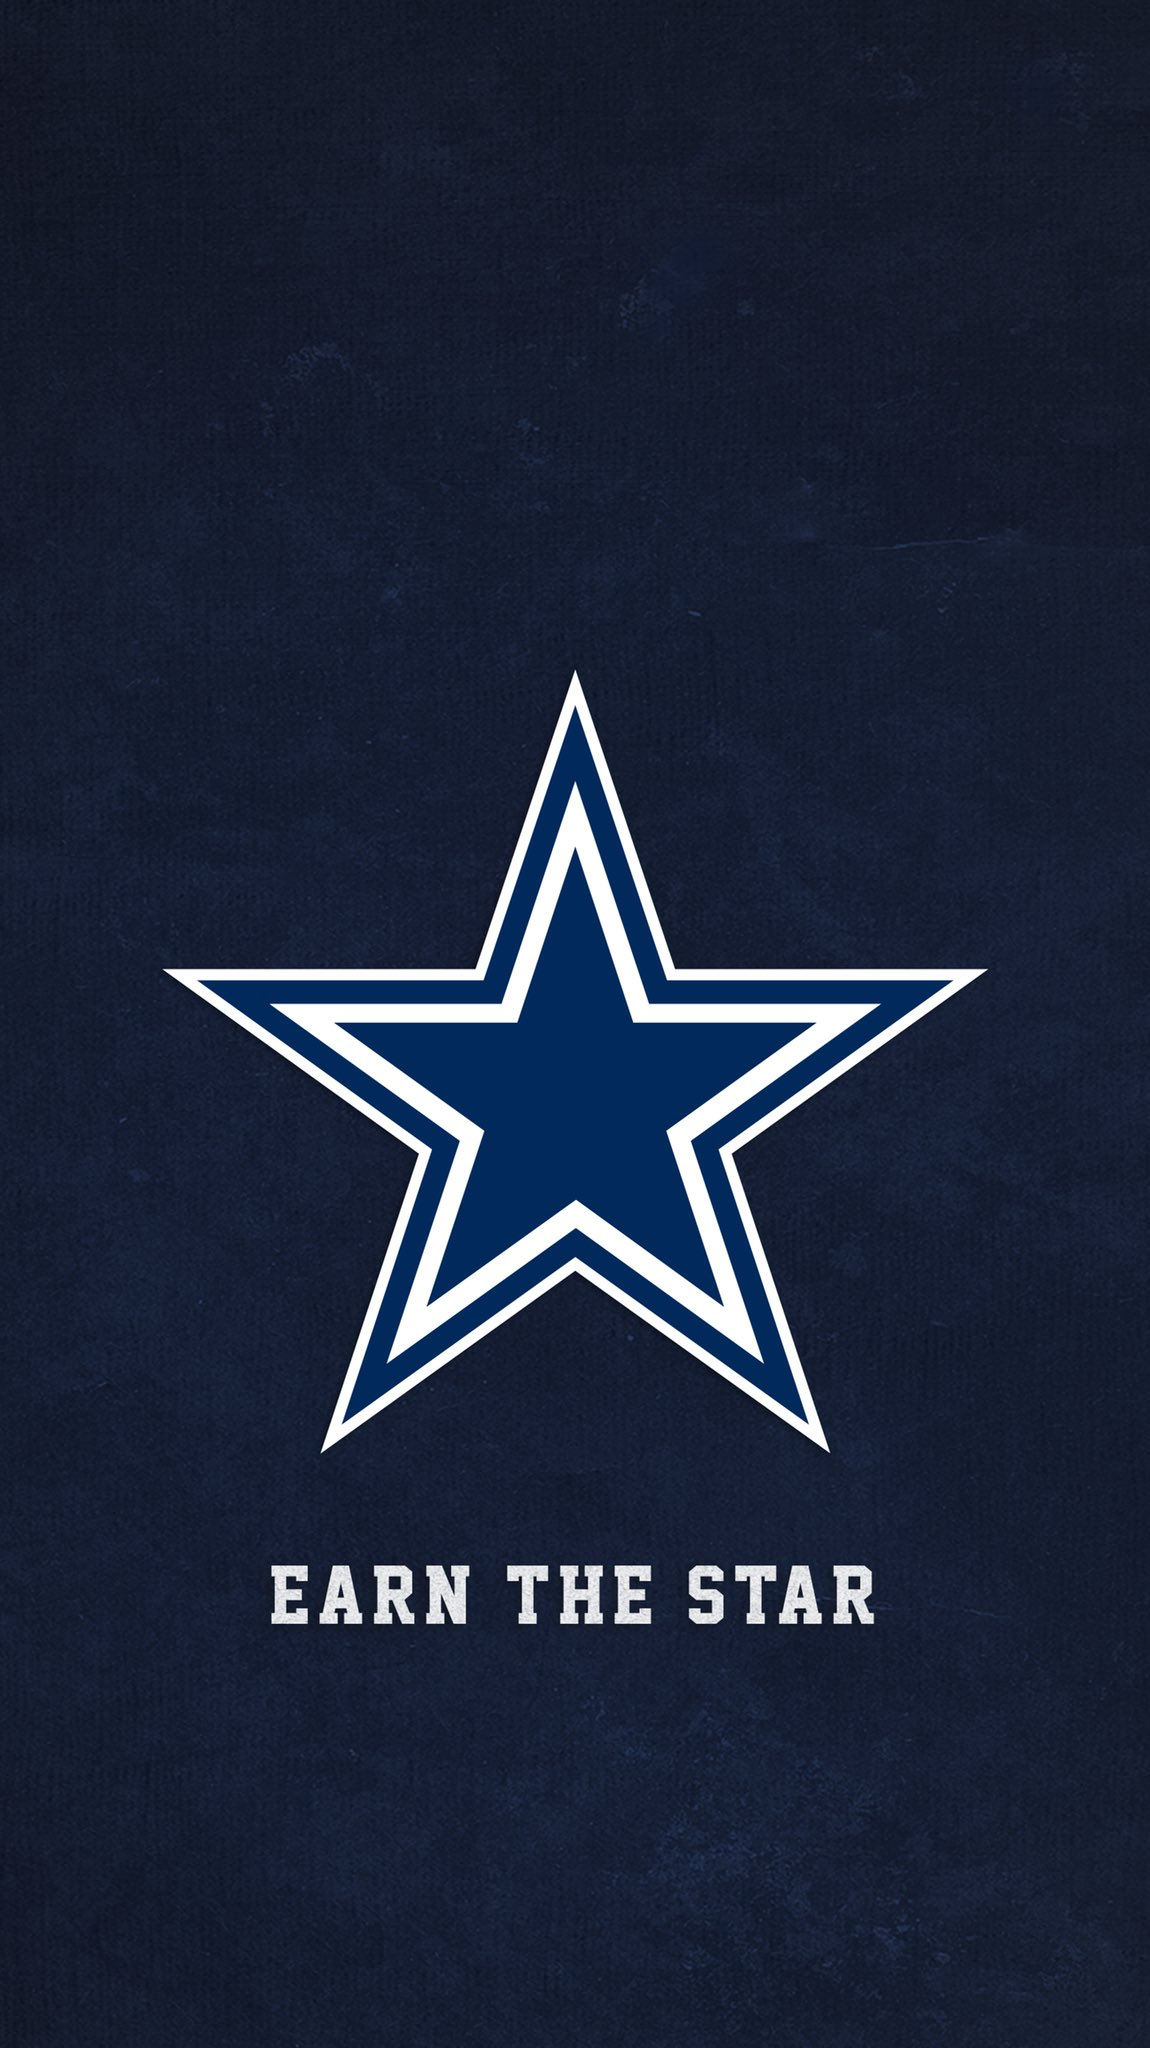 'You have to EARN the right to wear that star.' -Jason Garrett  #EarnTheStar | #WallpaperWednesday https://t.co/YJlT7neDmk